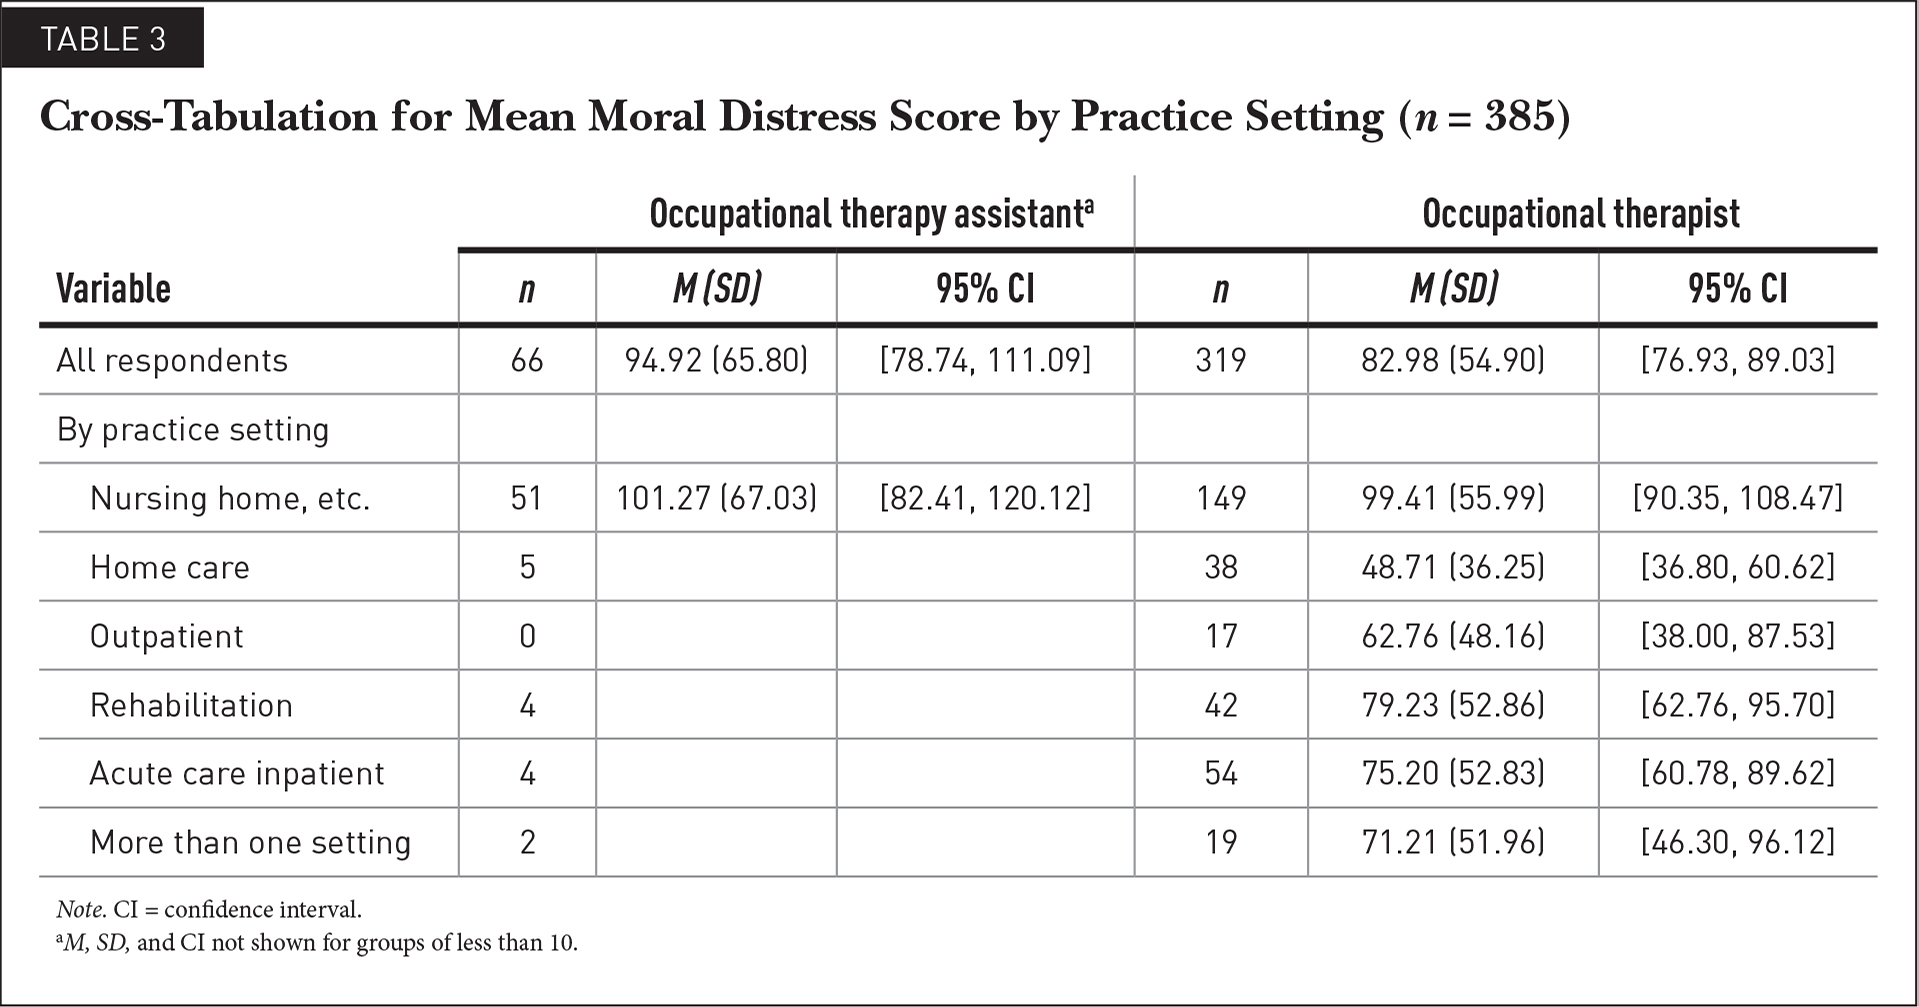 Cross-Tabulation for Mean Moral Distress Score by Practice Setting (n = 385)